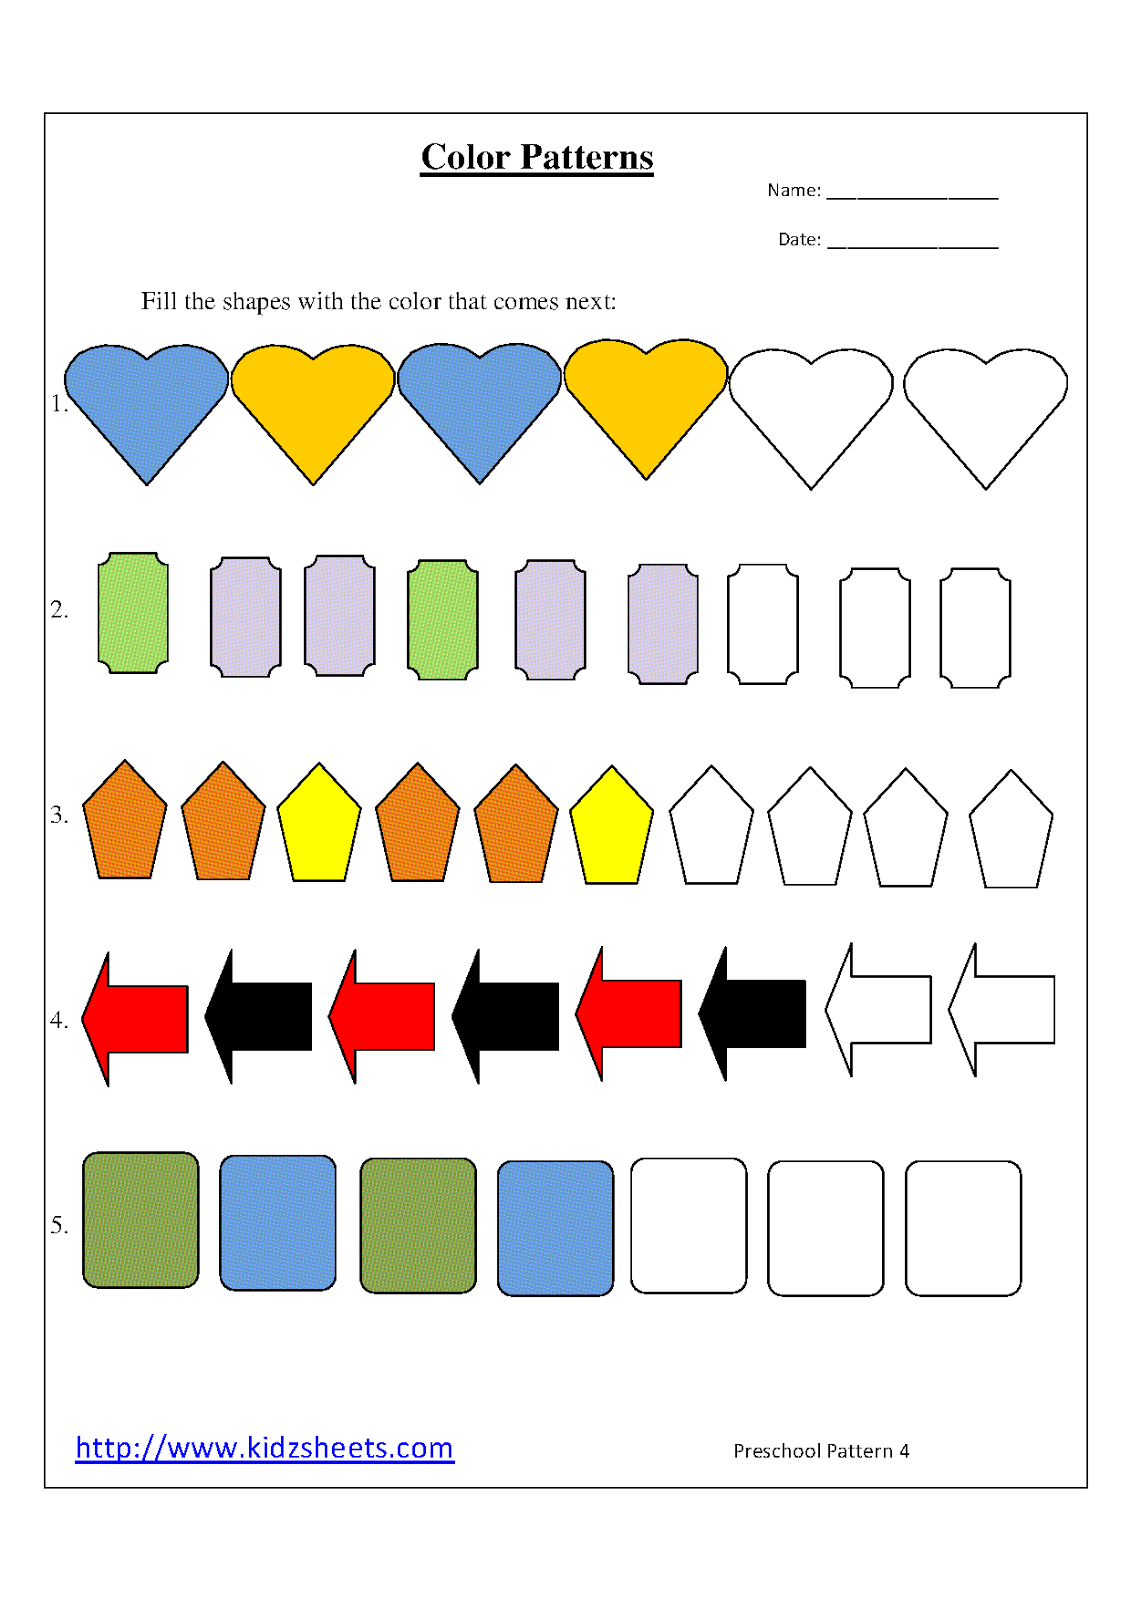 Patterns worksheets for kindergarten